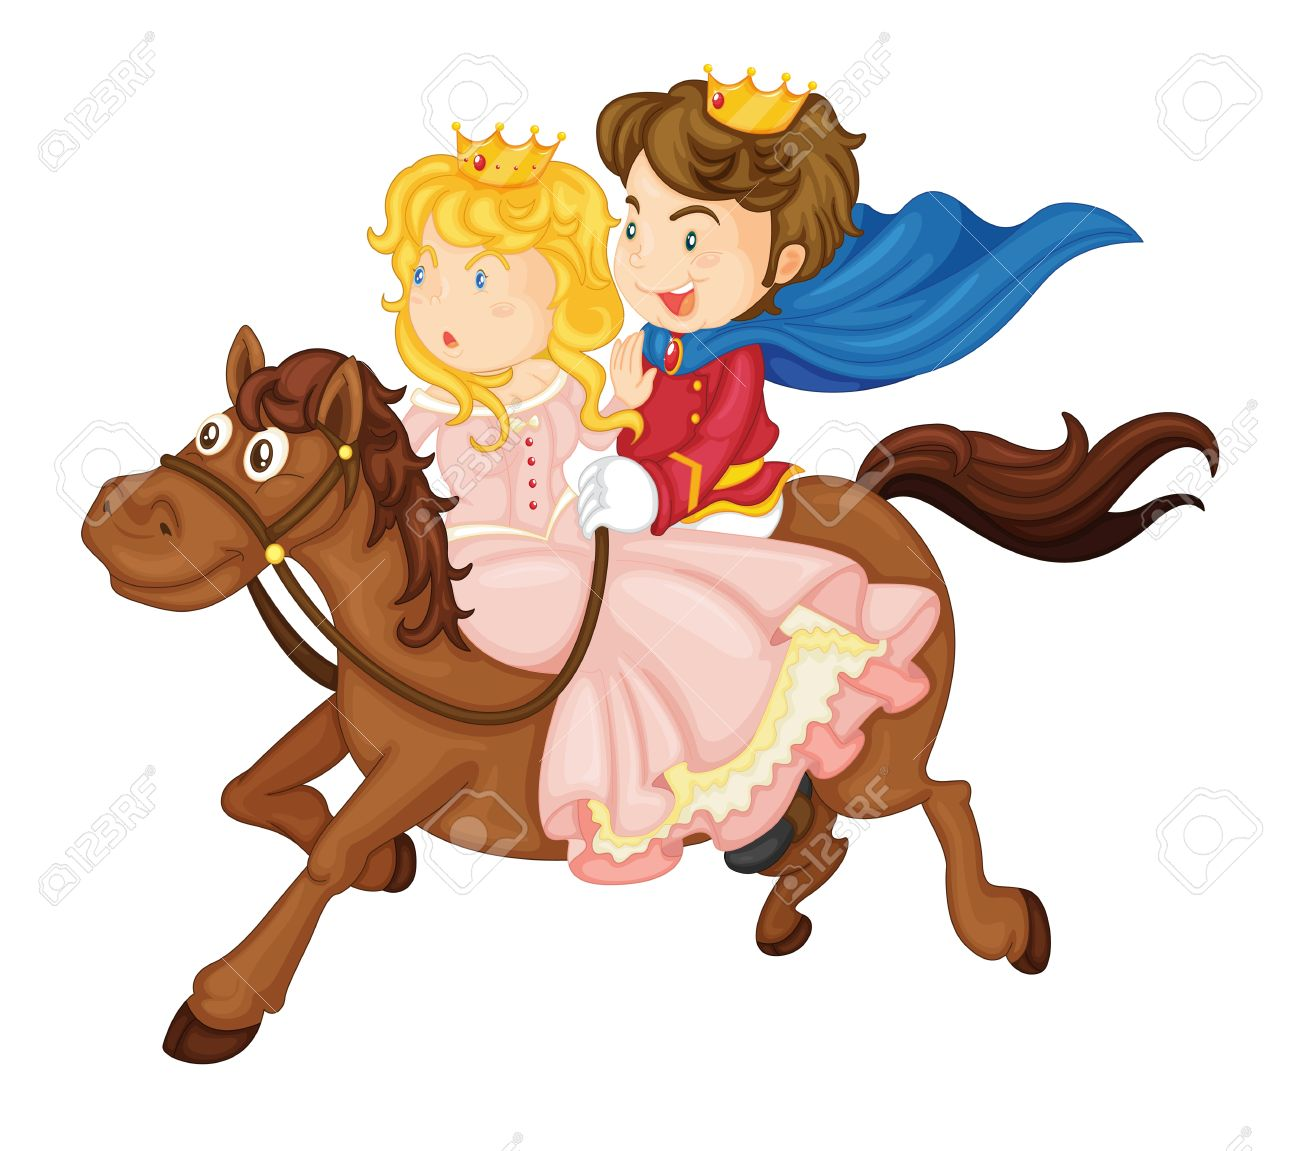 Illustration Of King And Queen Riding On A Horse On A White Royalty Free Cliparts Vectors And Stock Illustration Image 15480621